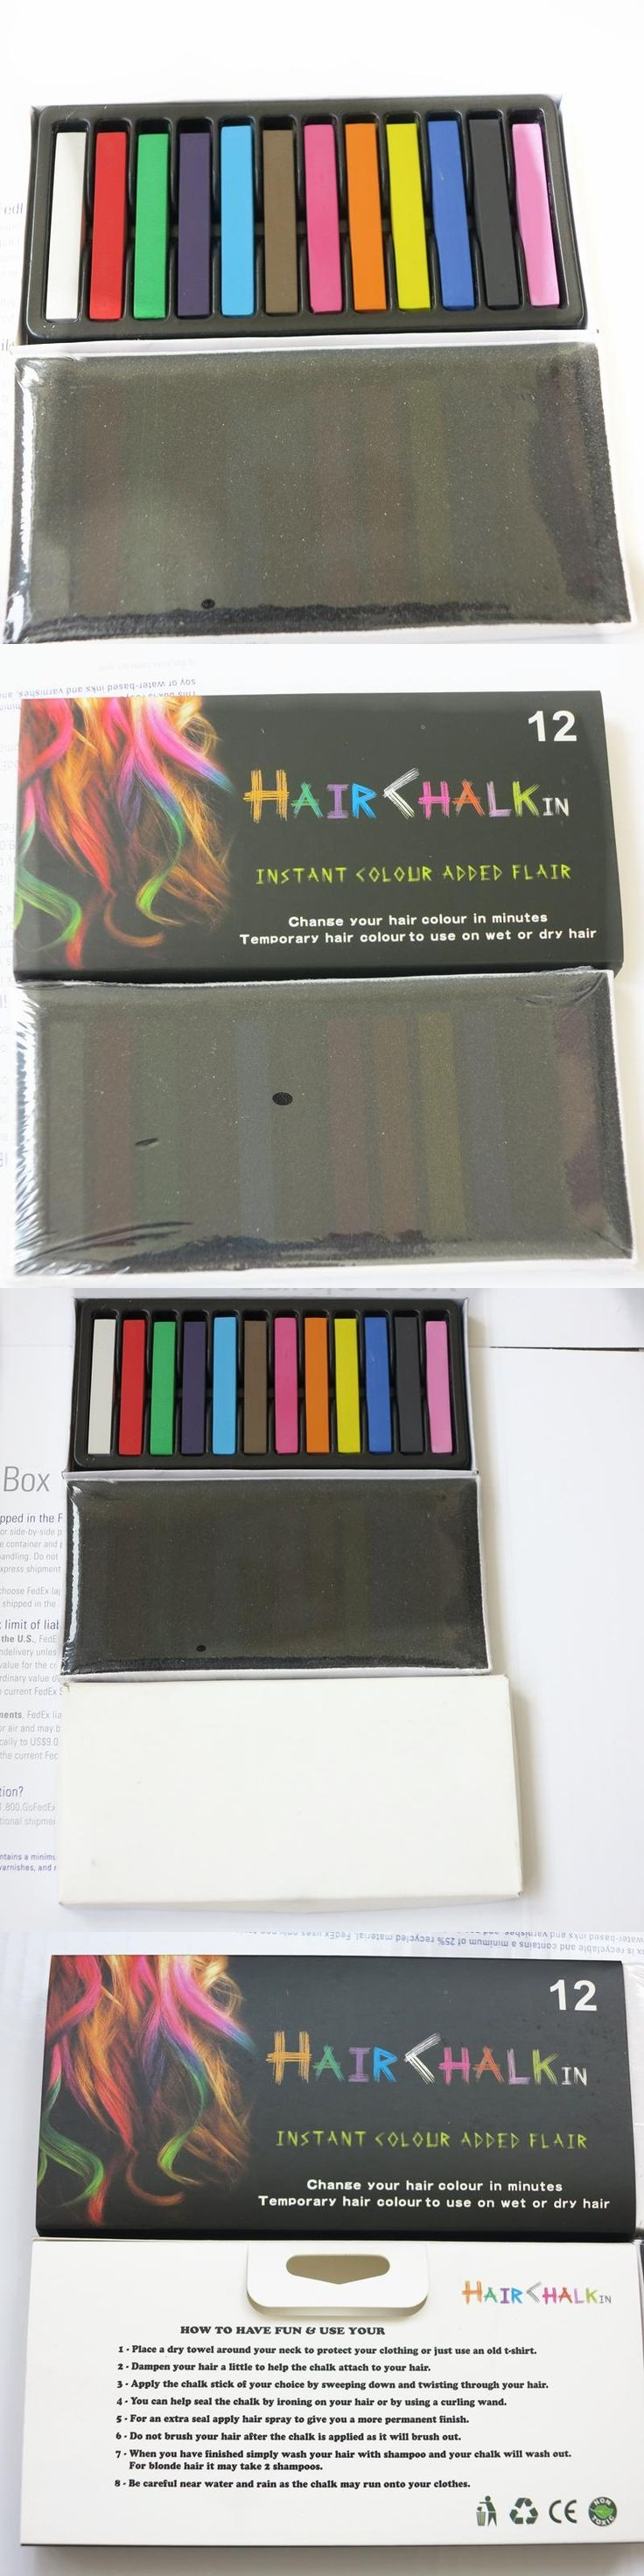 HARMONY 1 SET 12 Colors Non-toxic Temporary Salon Kit Pastel Chalk Square Hair Dye Color Chalk Used For Hair with Fast Delivery